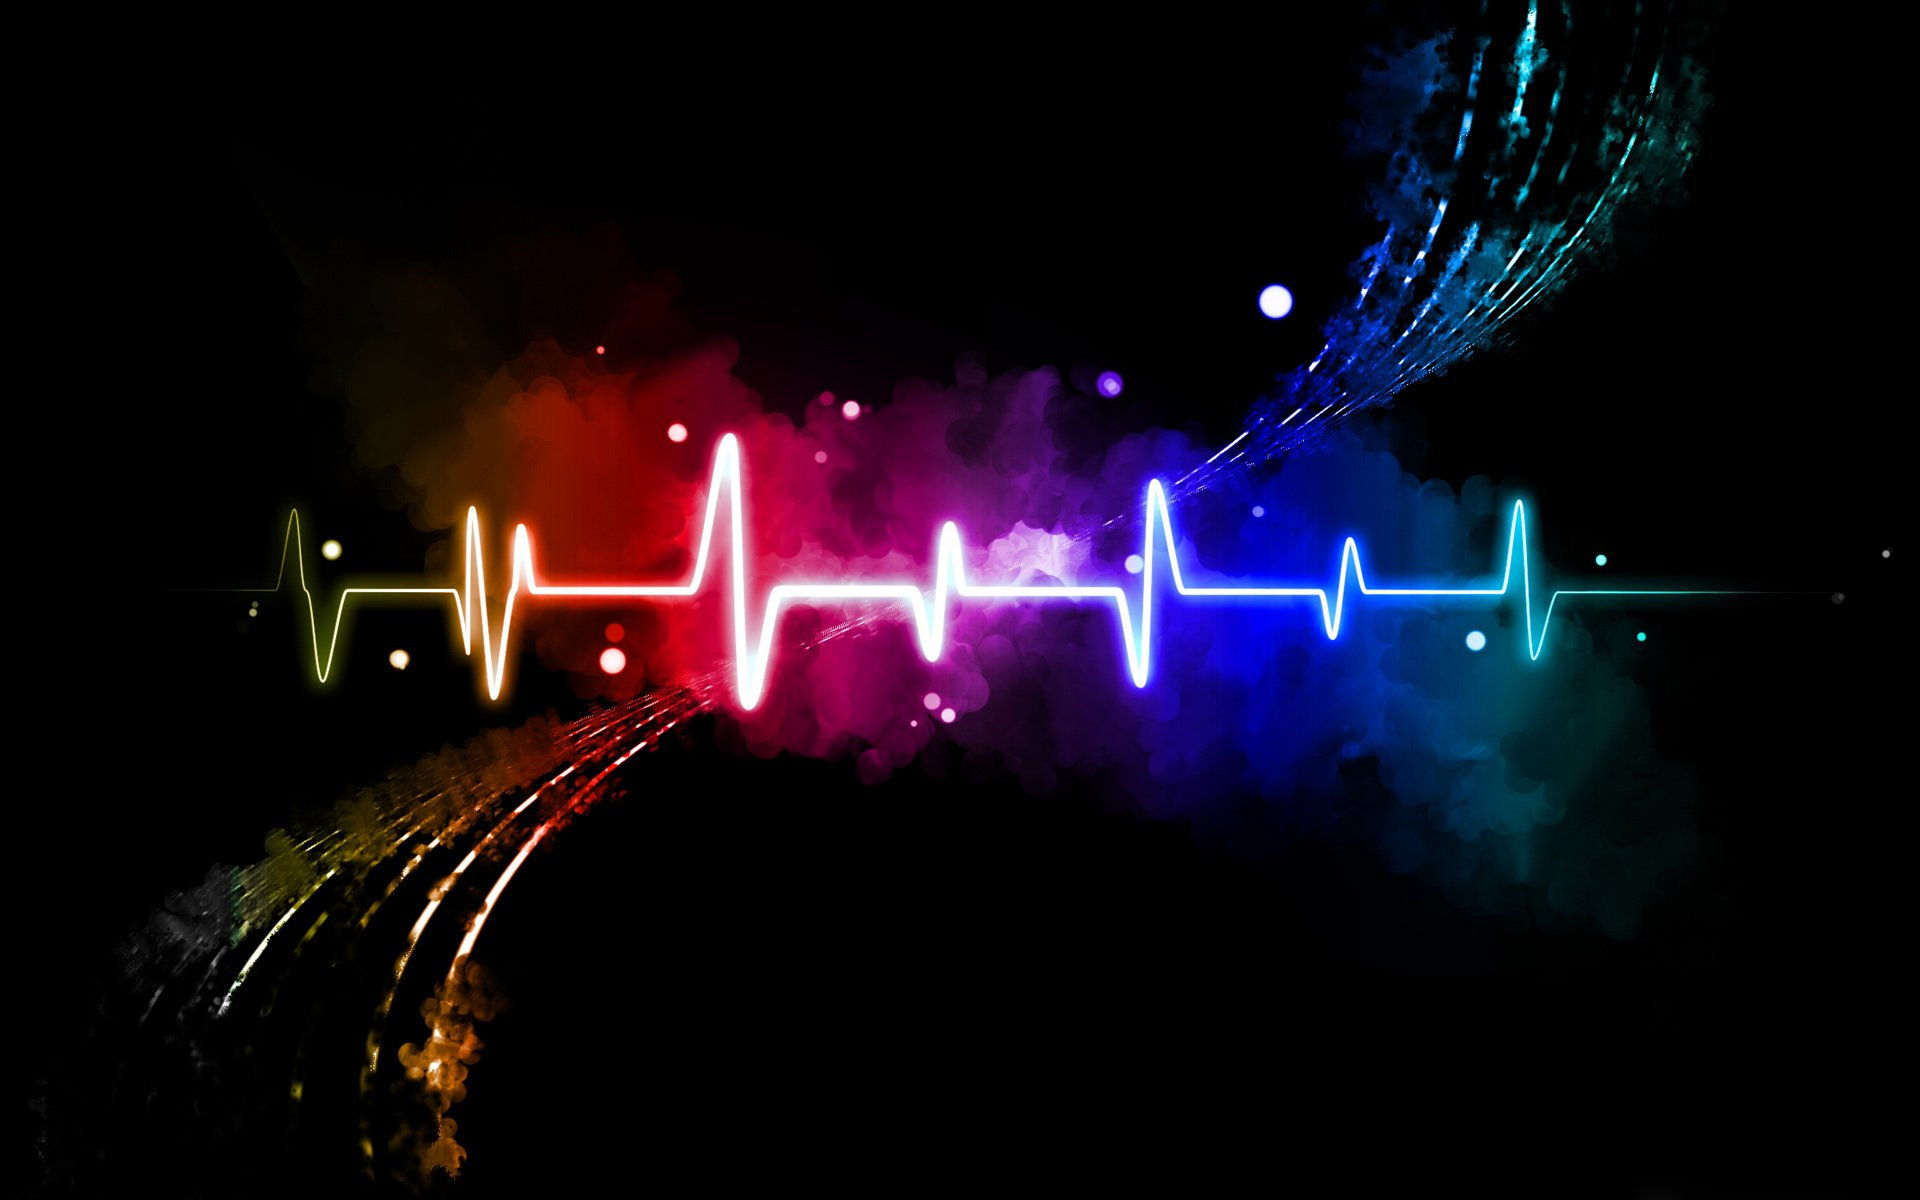 Free Download Heartbeat Abstract Hd Wallpapers Wallpapersin4knet 1920x1200 For Your Desktop Mobile Tablet Explore 77 Heartbeat Wallpaper Heart Background Wallpaper Heart Wallpaper Images Heart Wallpapers For Desktop